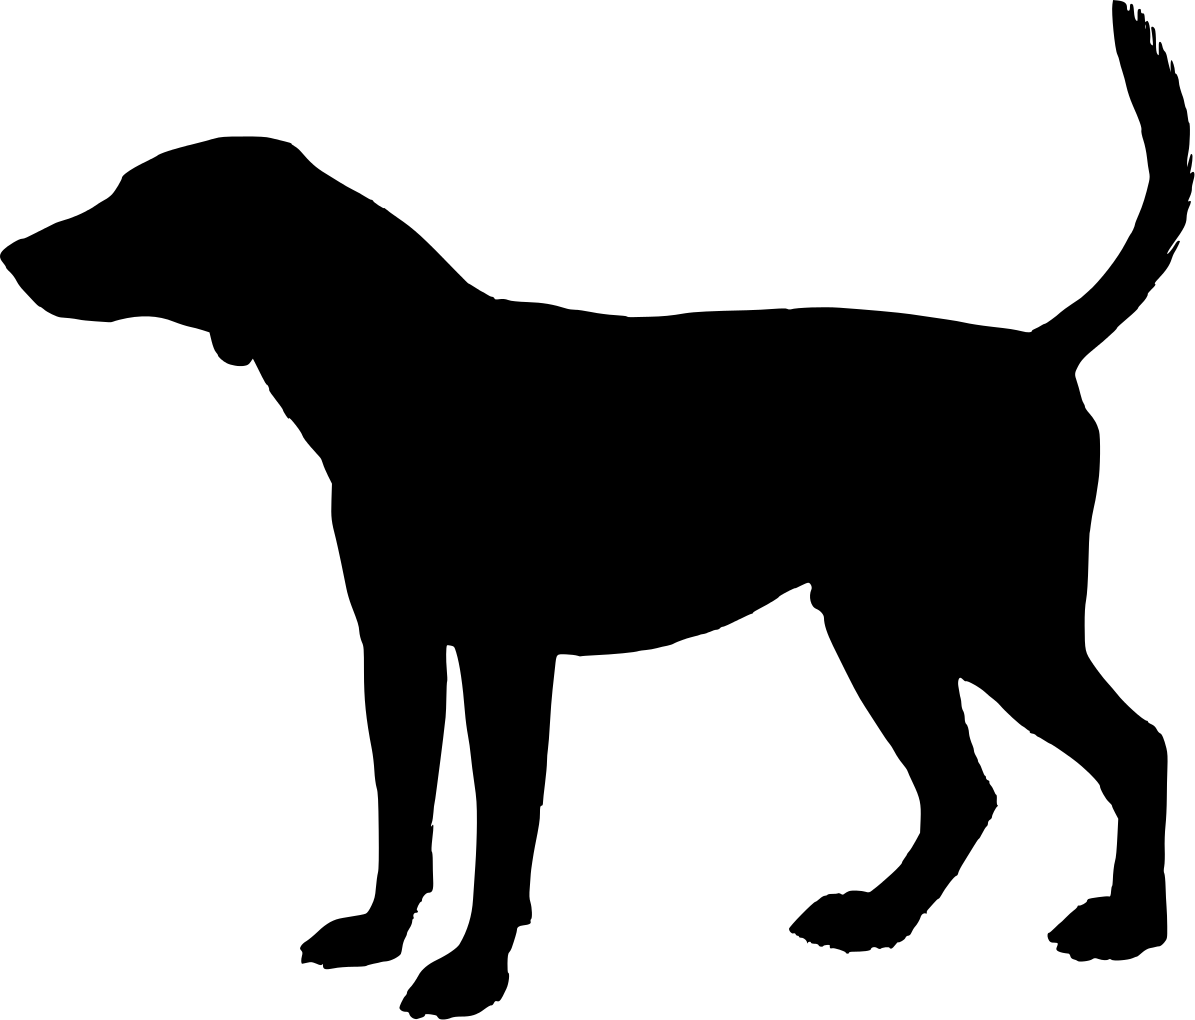 1195x1020 Free Dog Head Silhouette, Hanslodge Clip Art collection